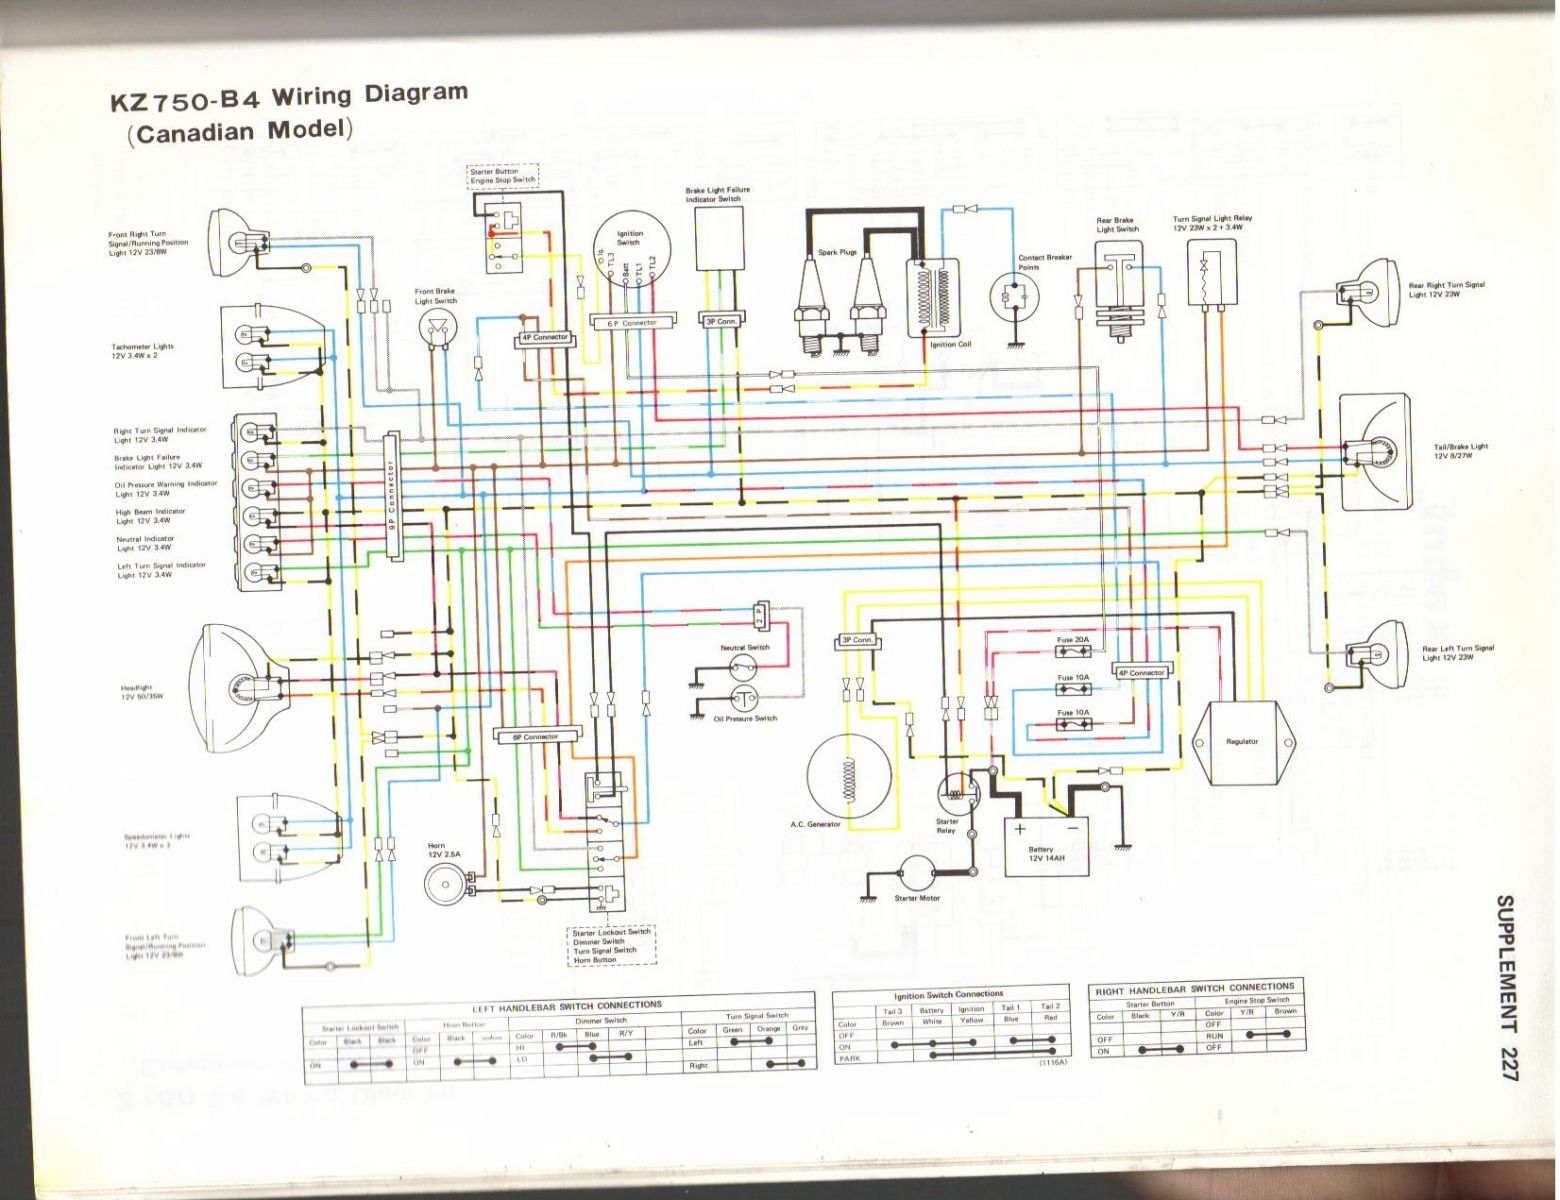 kz750b4wiringdiagram 1976 kz 750 need help! wiring harness kzrider forum kzrider kz440 wiring diagram at creativeand.co